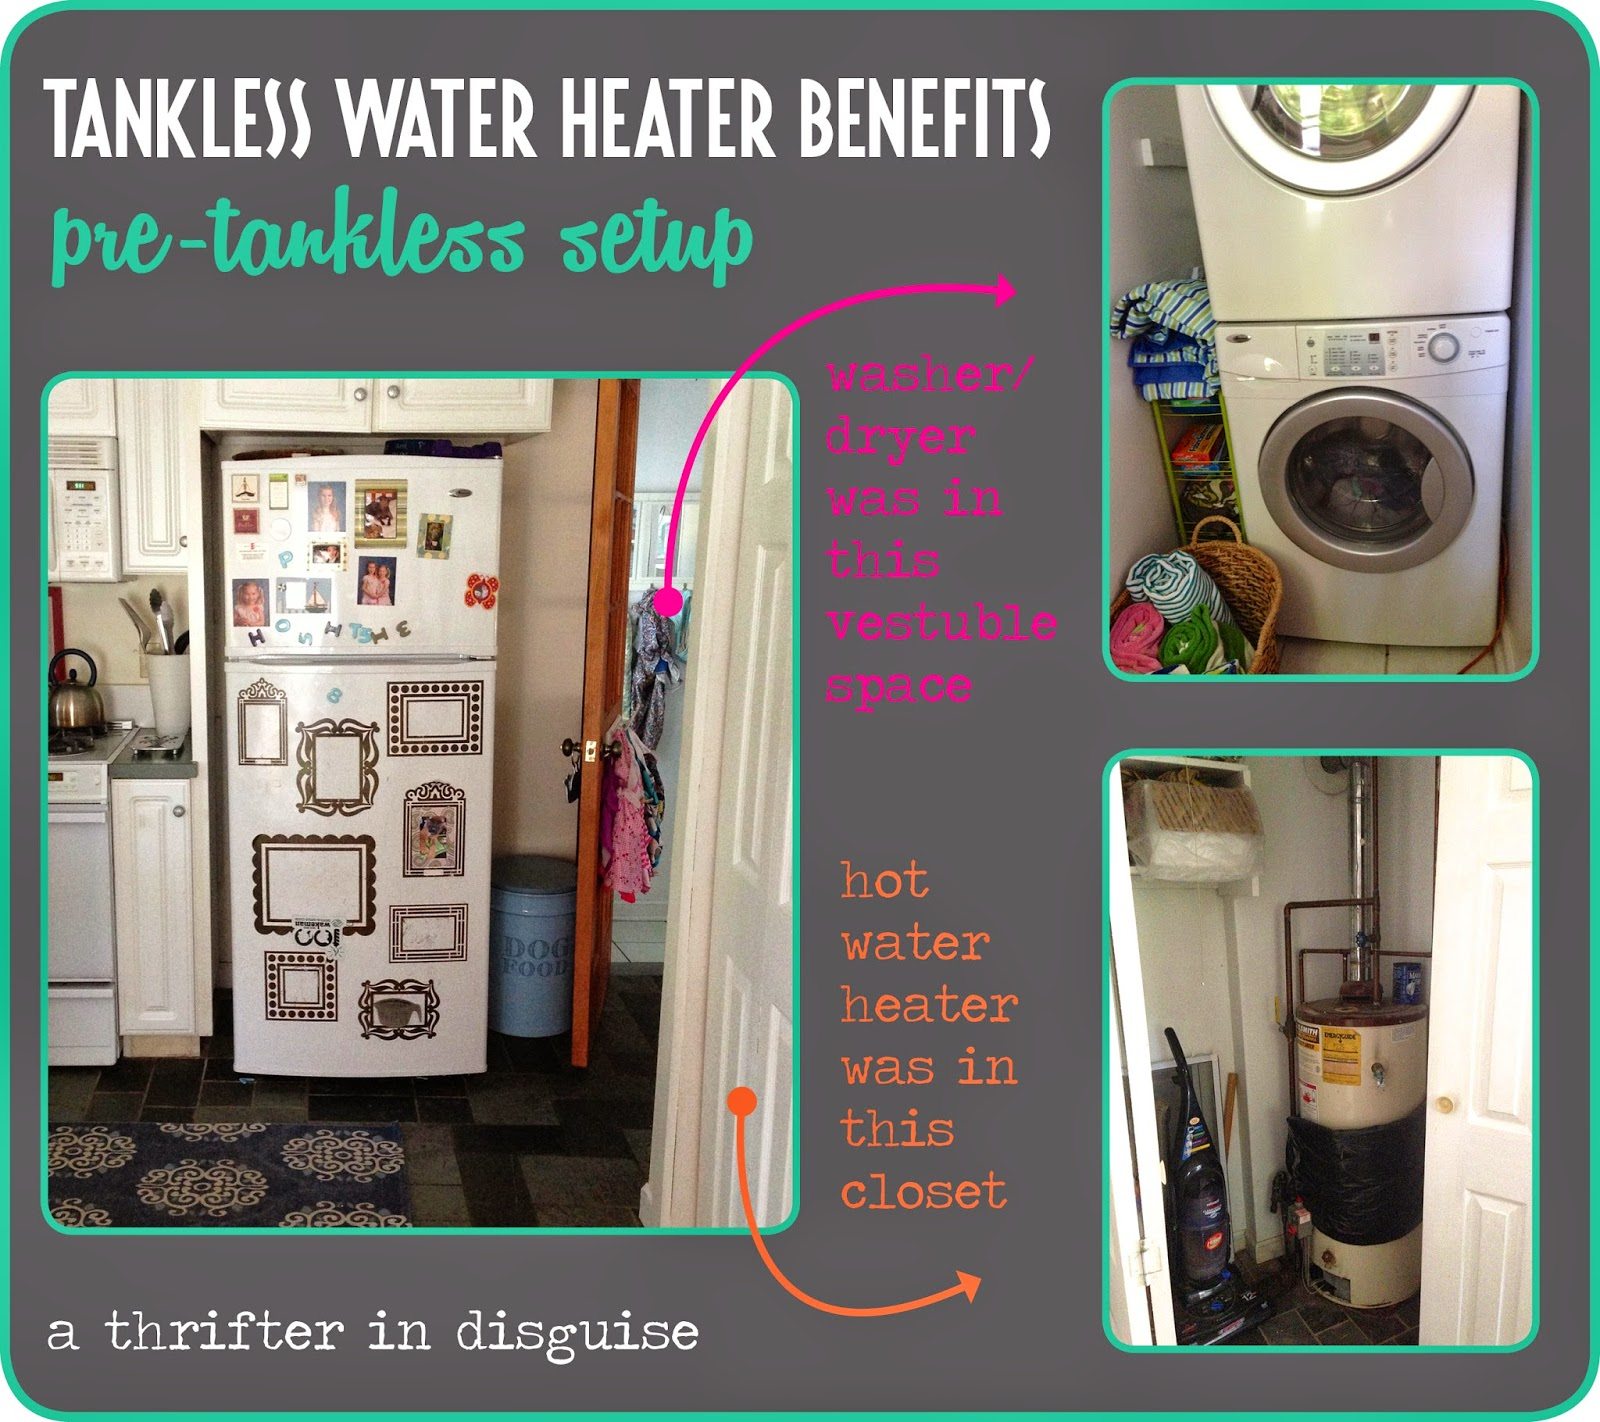 Why we got a tankless water heater